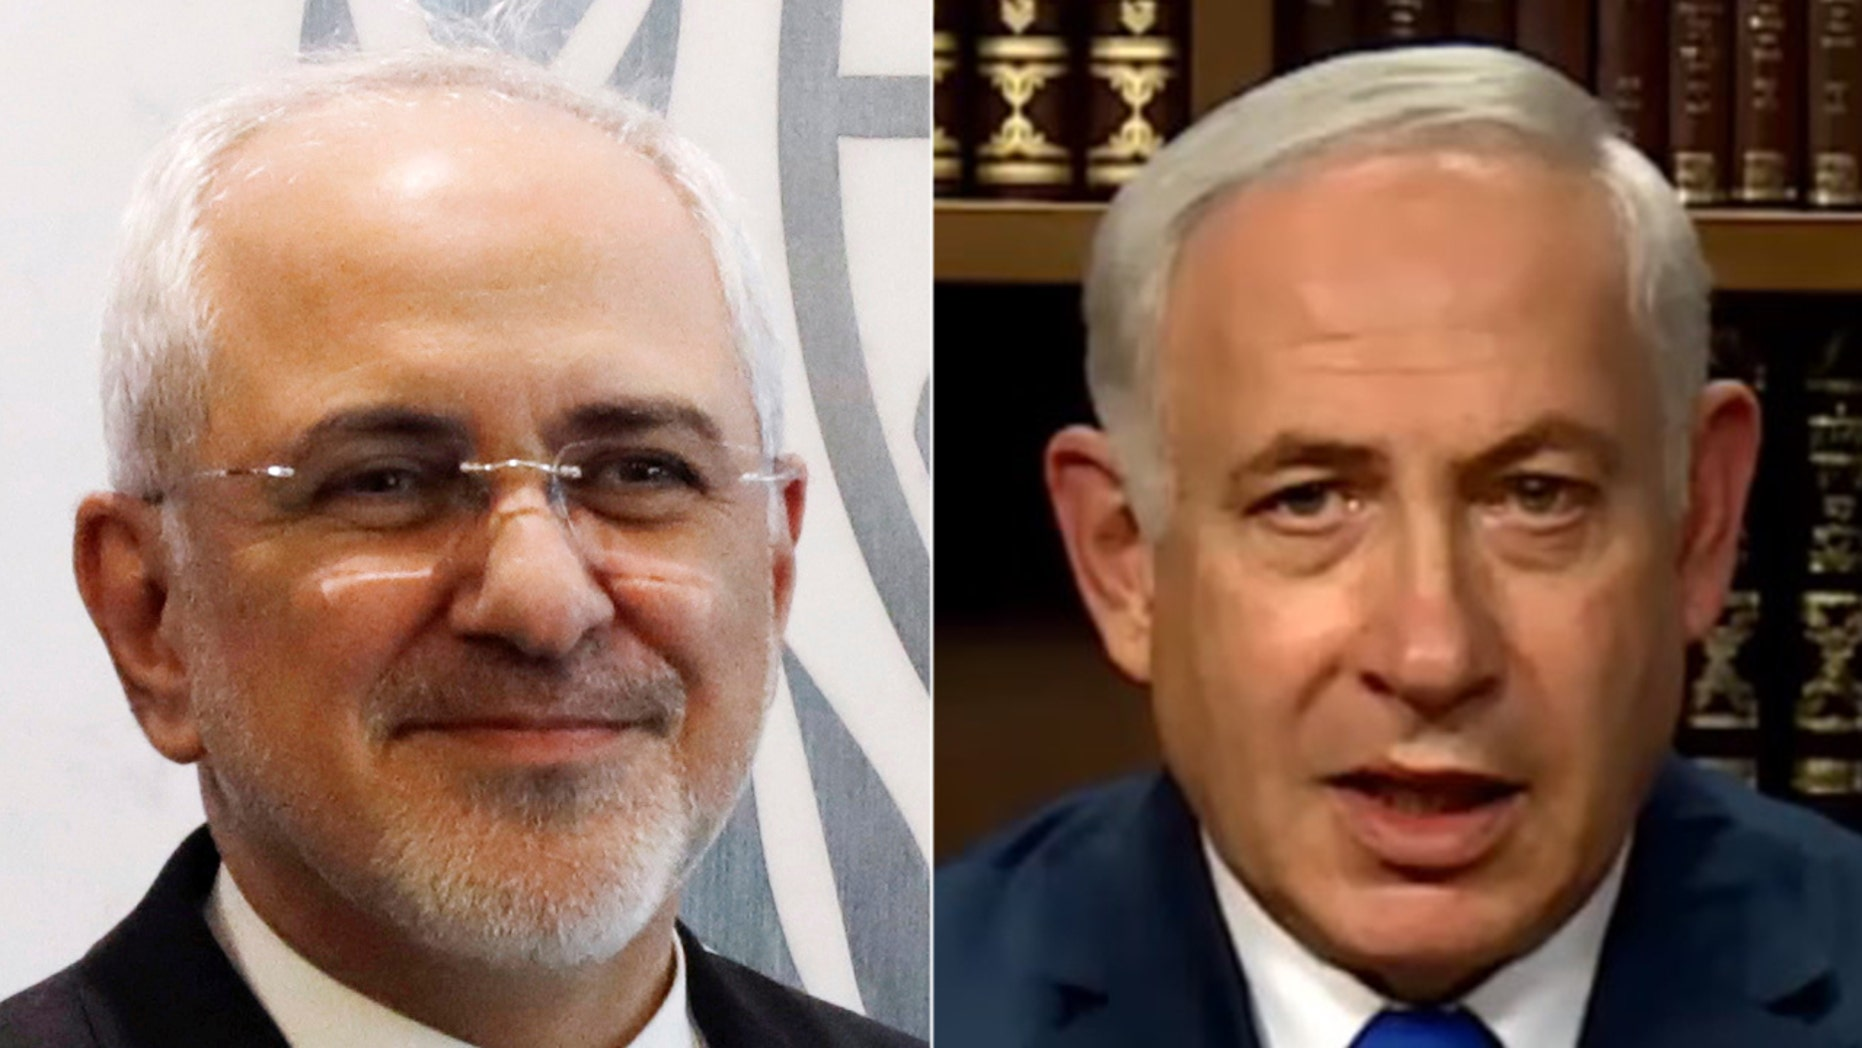 """In a video message posted online Monday, Israeli Prime Minister Benjamin Netanyahu had some choice words for Iran's foreign minister: """"Delete your account."""""""